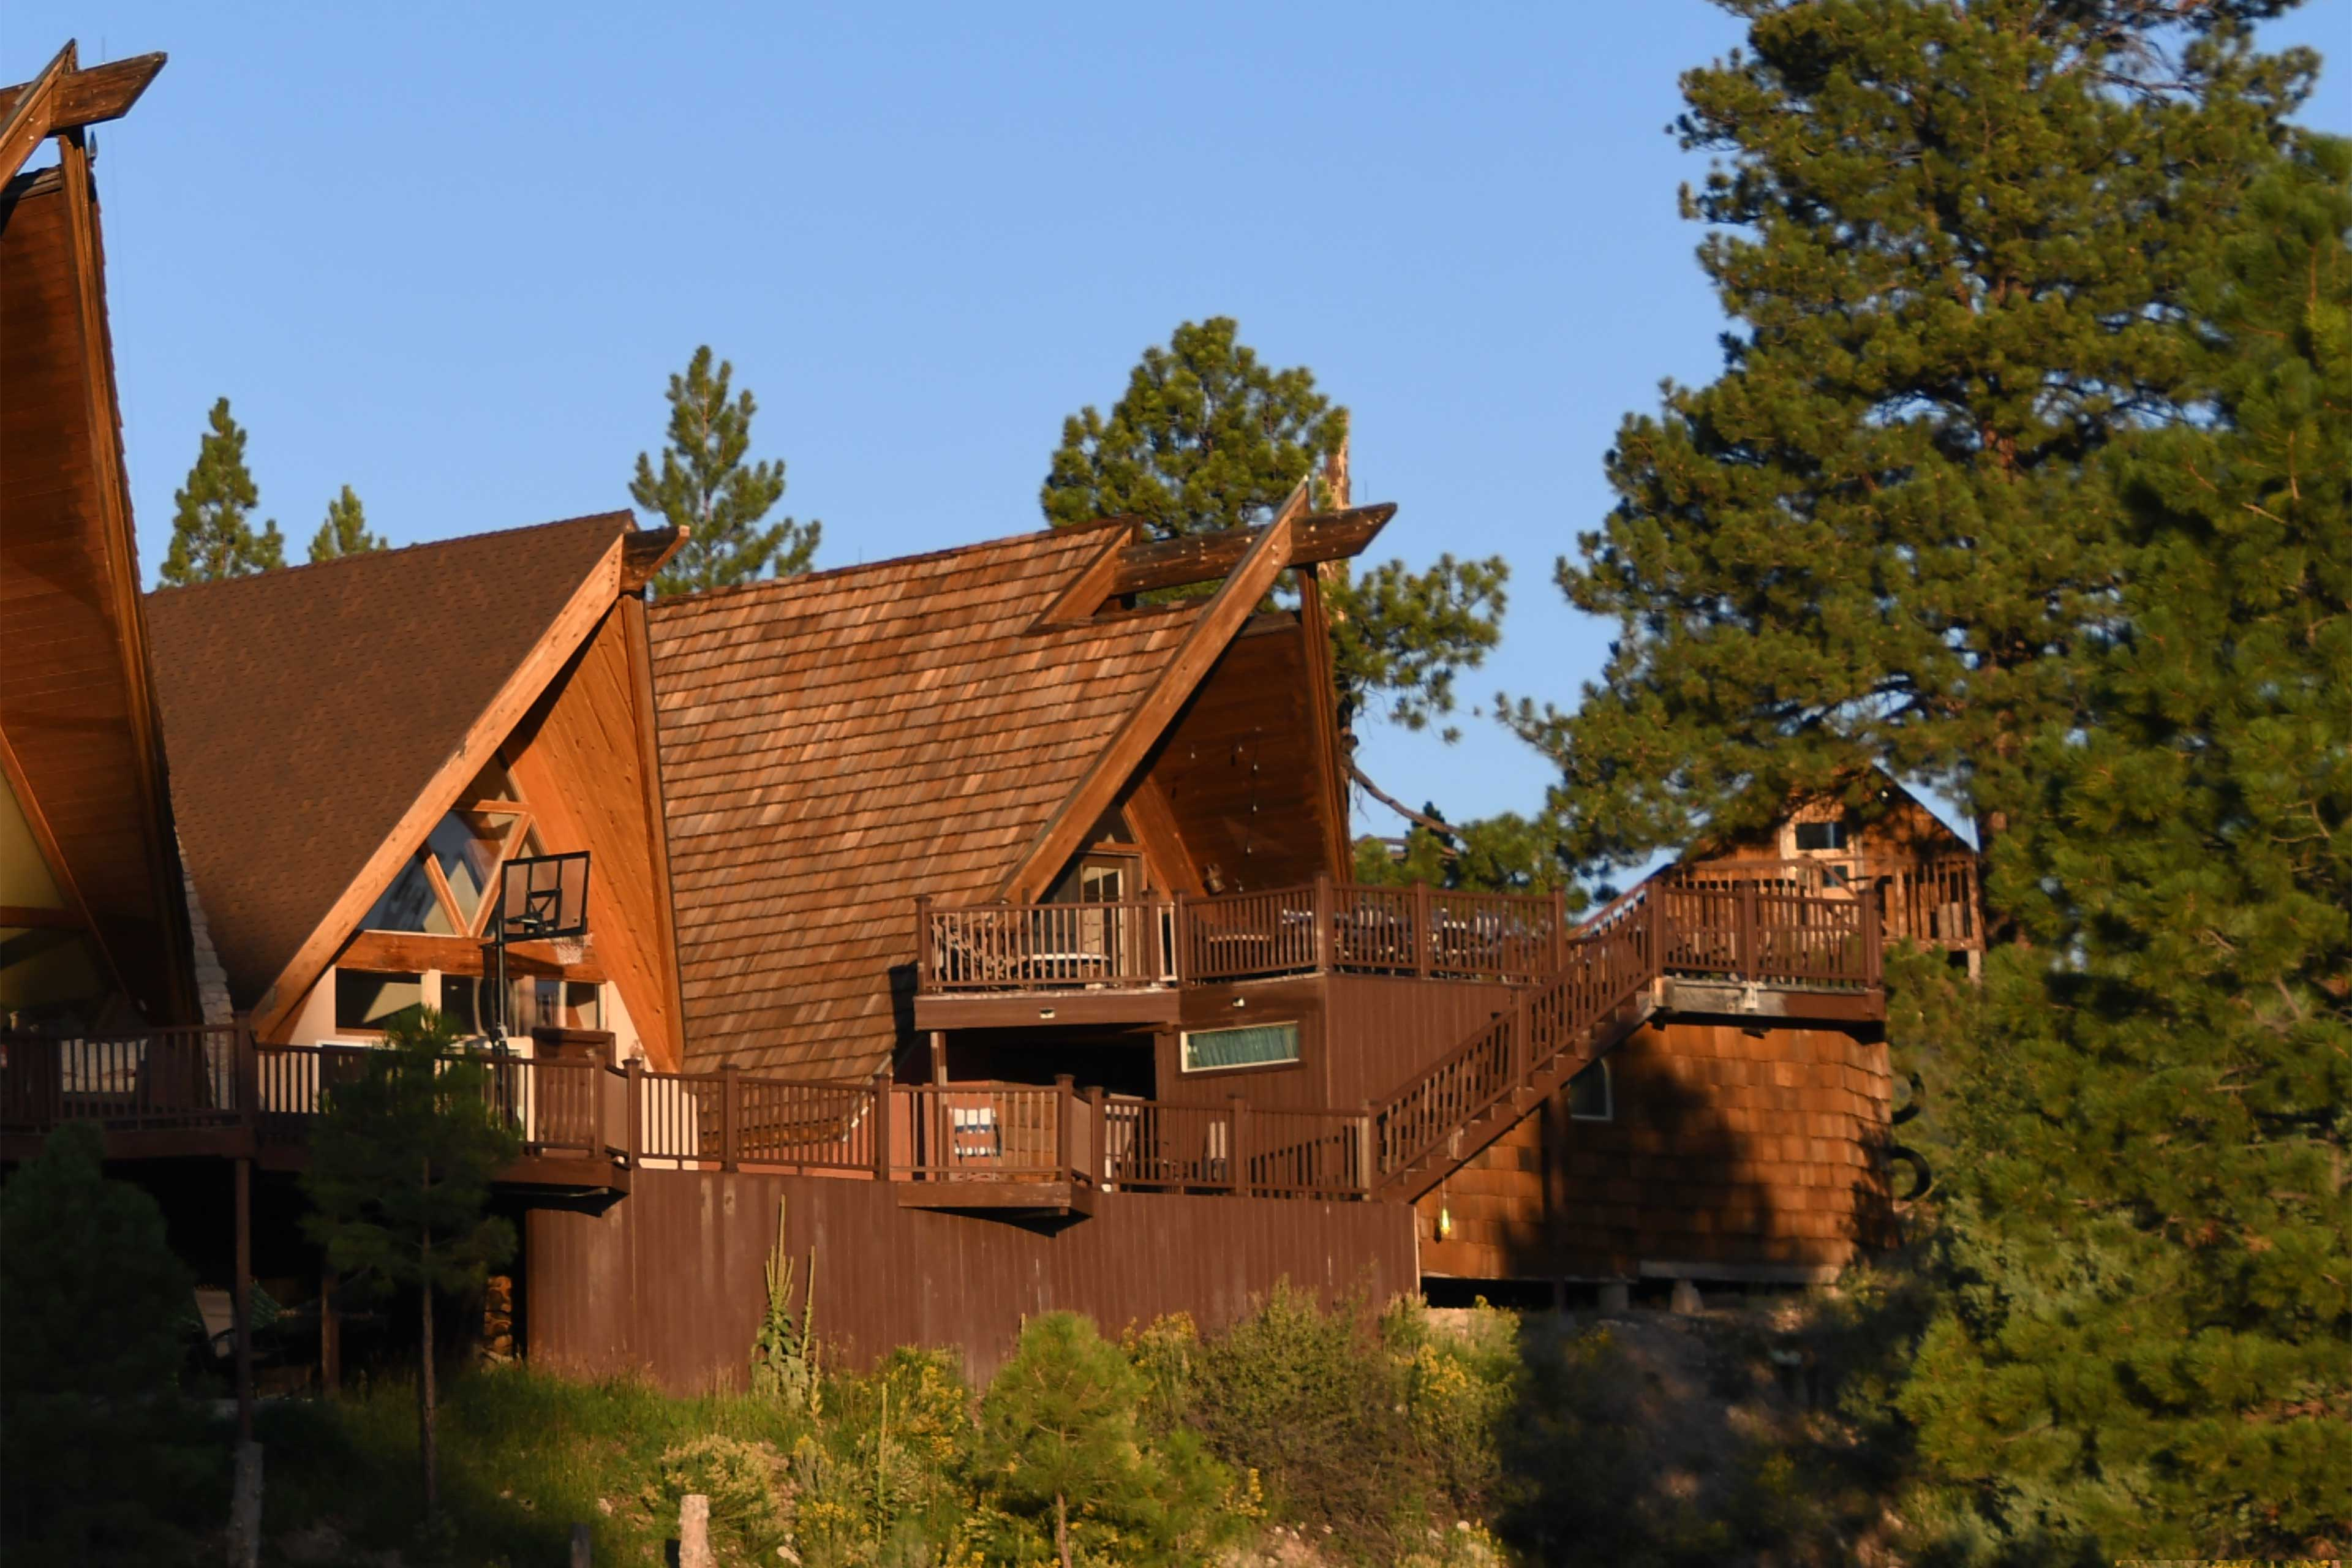 Long Valley Junction Vacation Rental   5BR   2.5 BA   3,000 Sq Ft